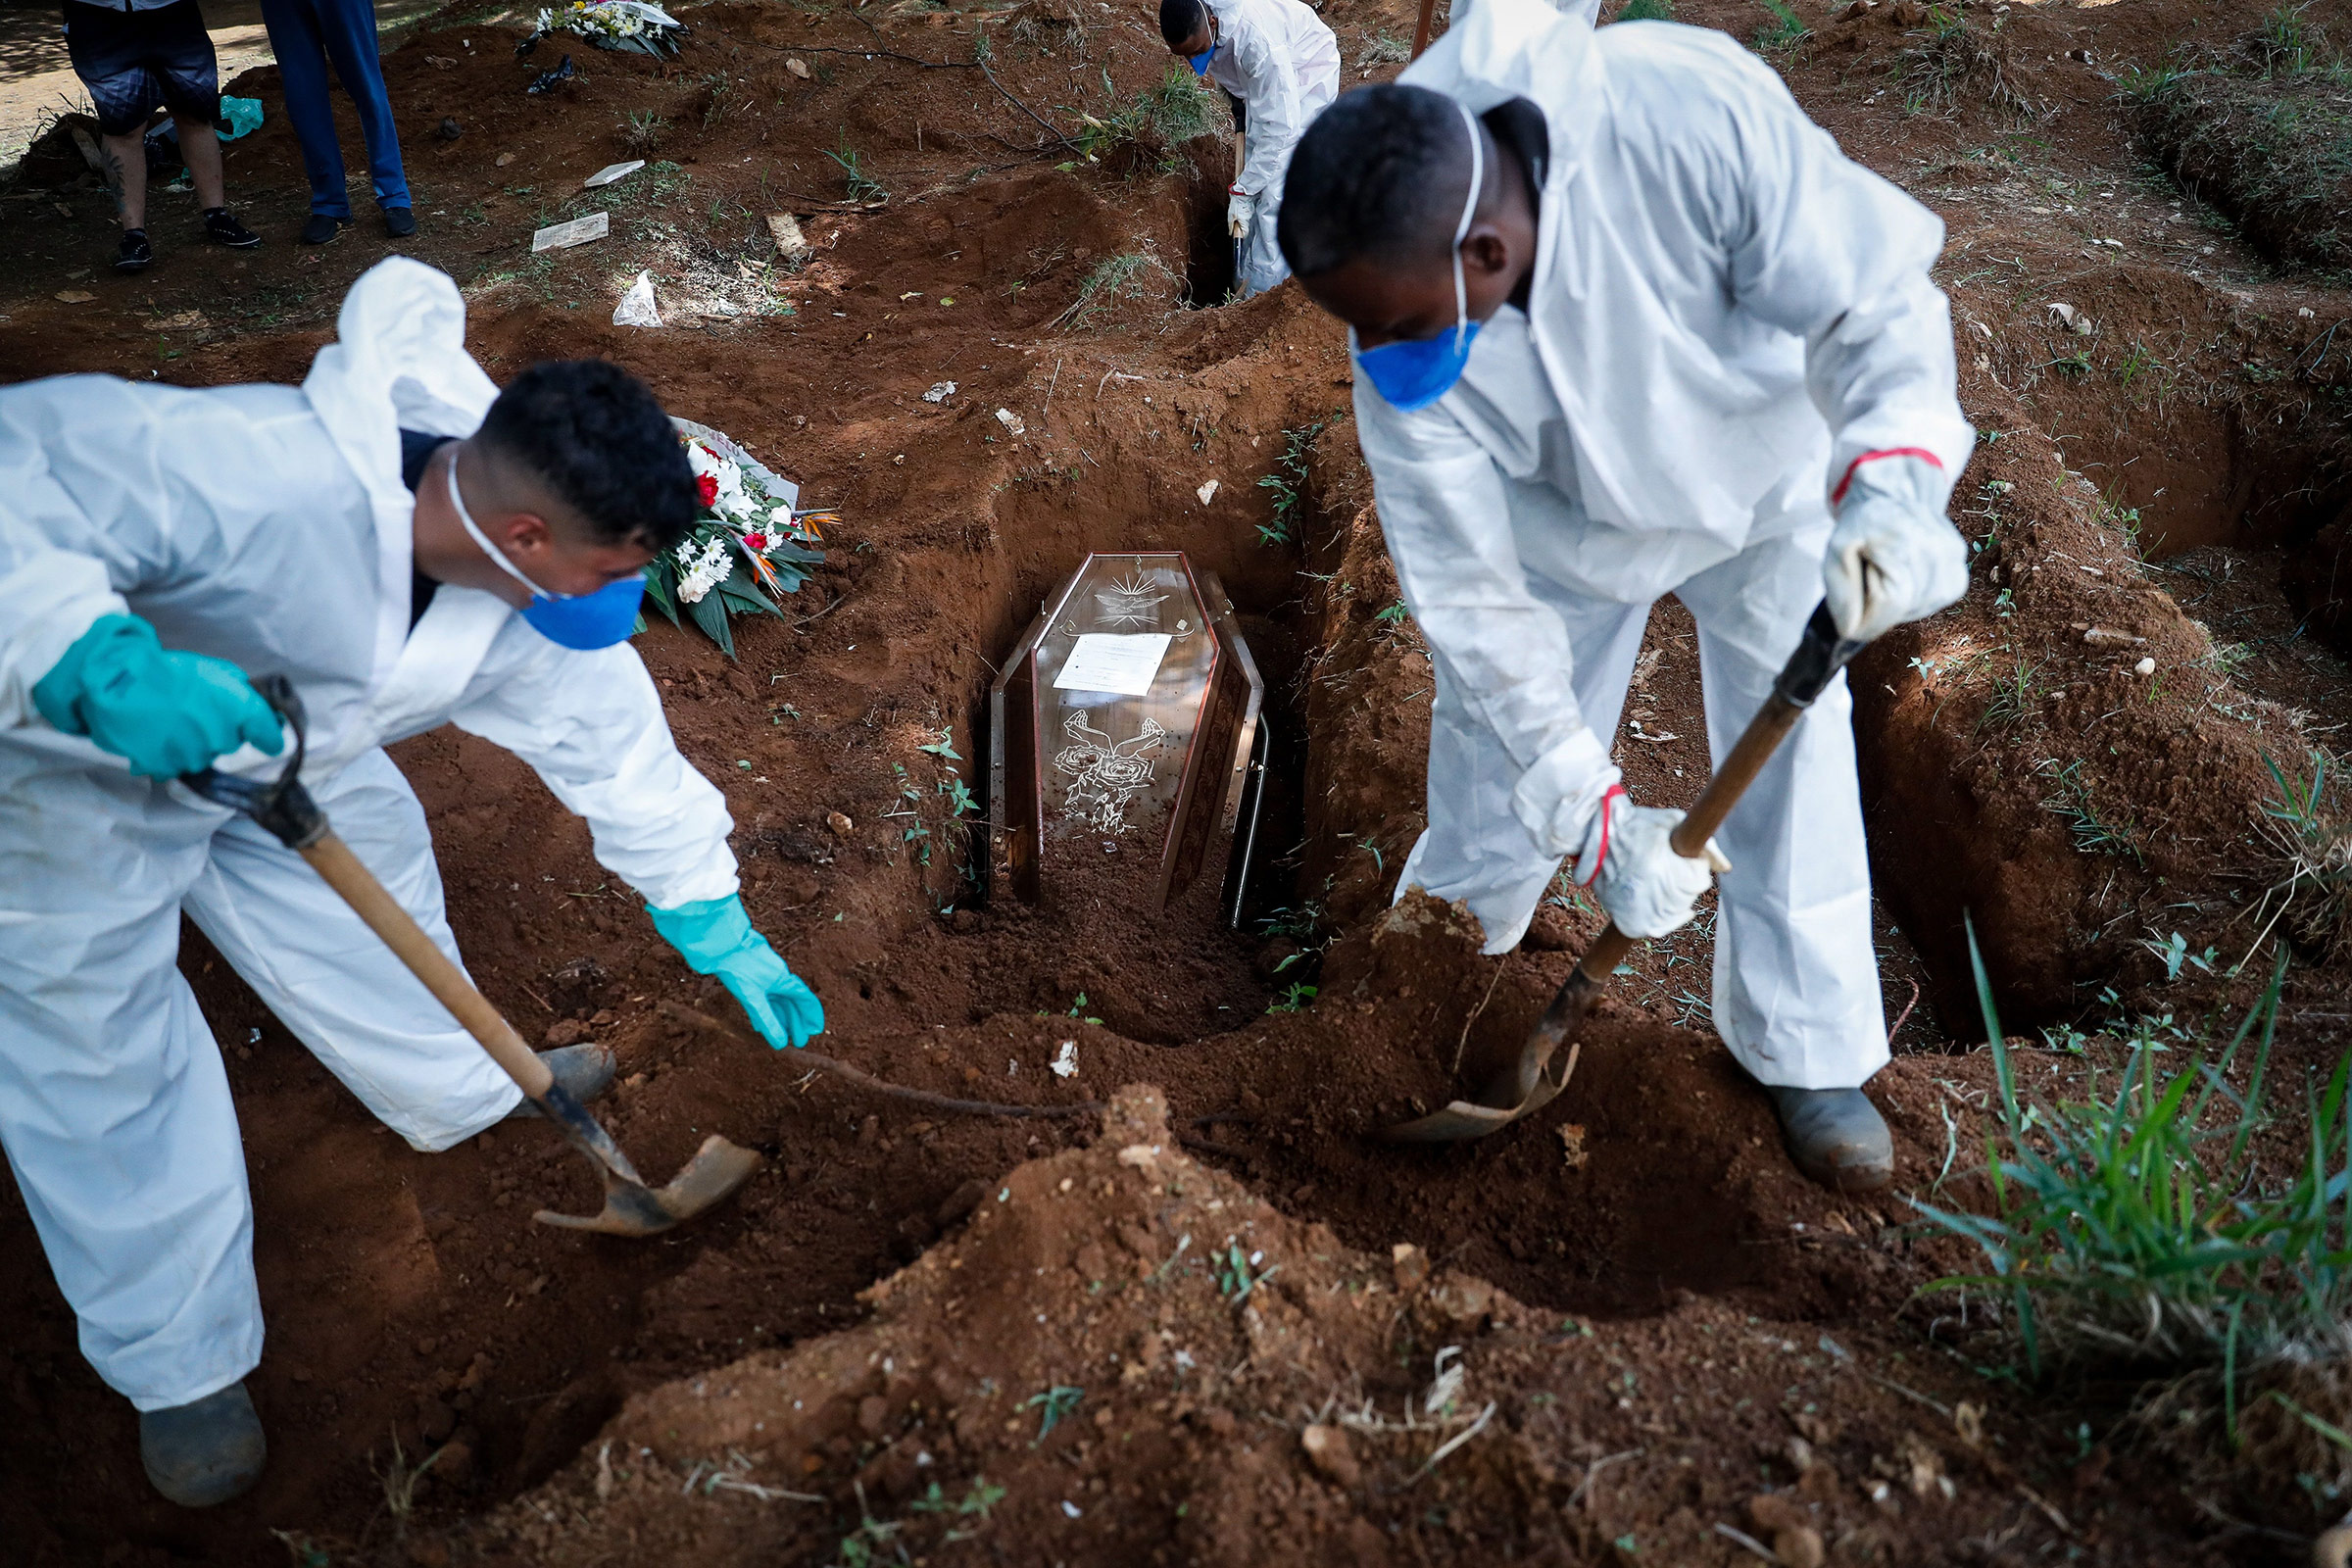 Workers carry out the burial of a Covid-19 victim at the Vila Formosa Cemetery in Sao Paulo, Brazil, on March 11.